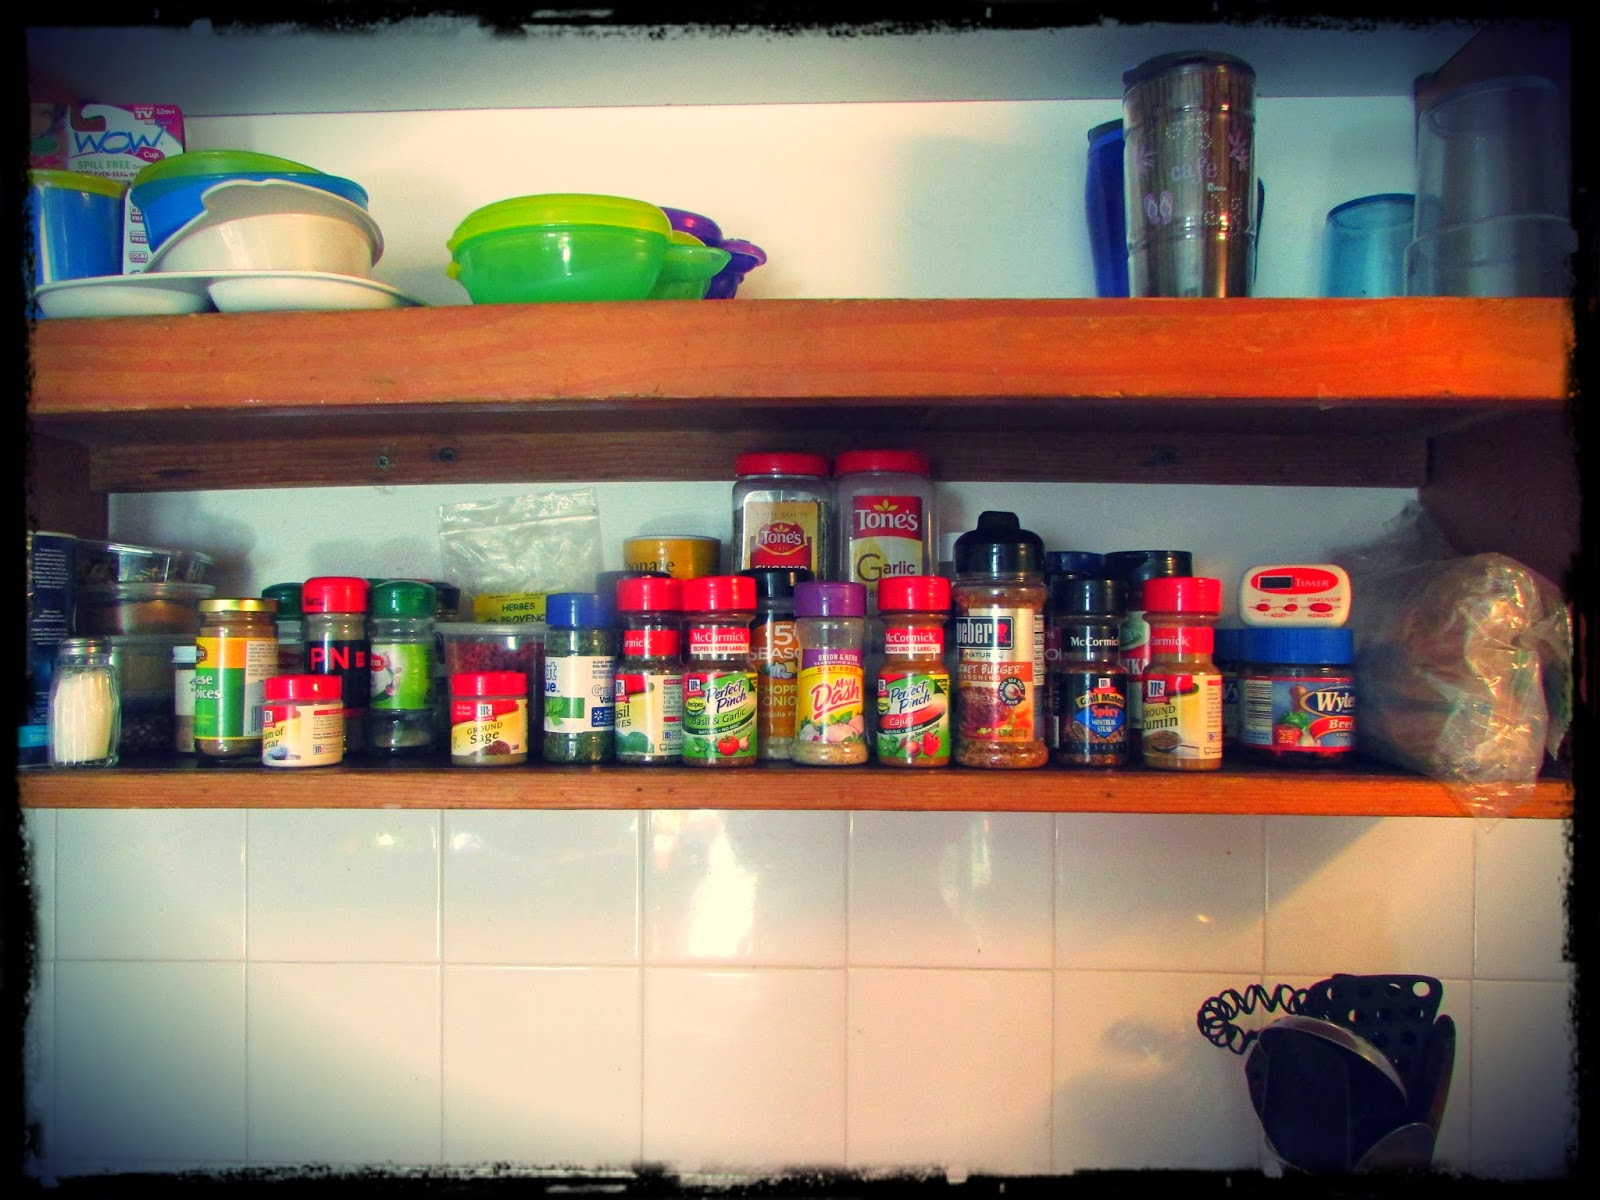 I'm sure we can get spices here, but I brought along my favorite ones just in case!